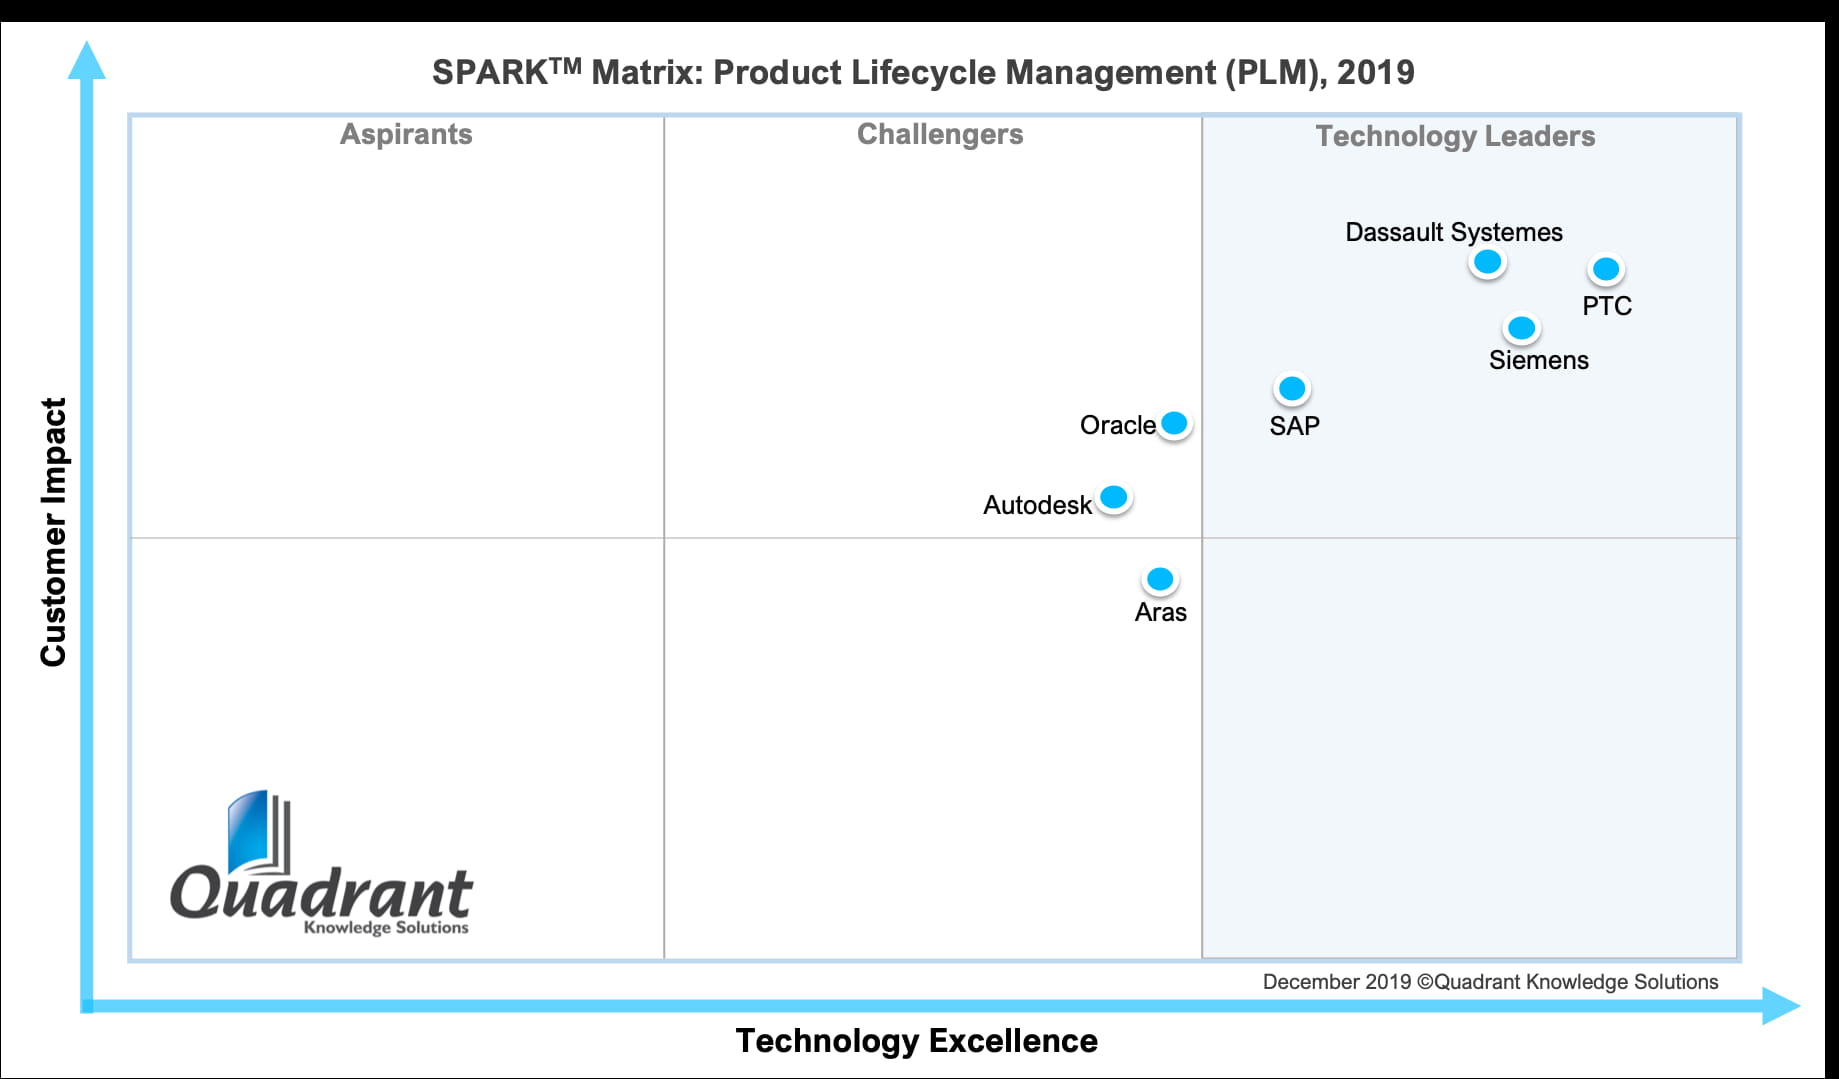 quadrant-knowledge-solutions-spark-matrix